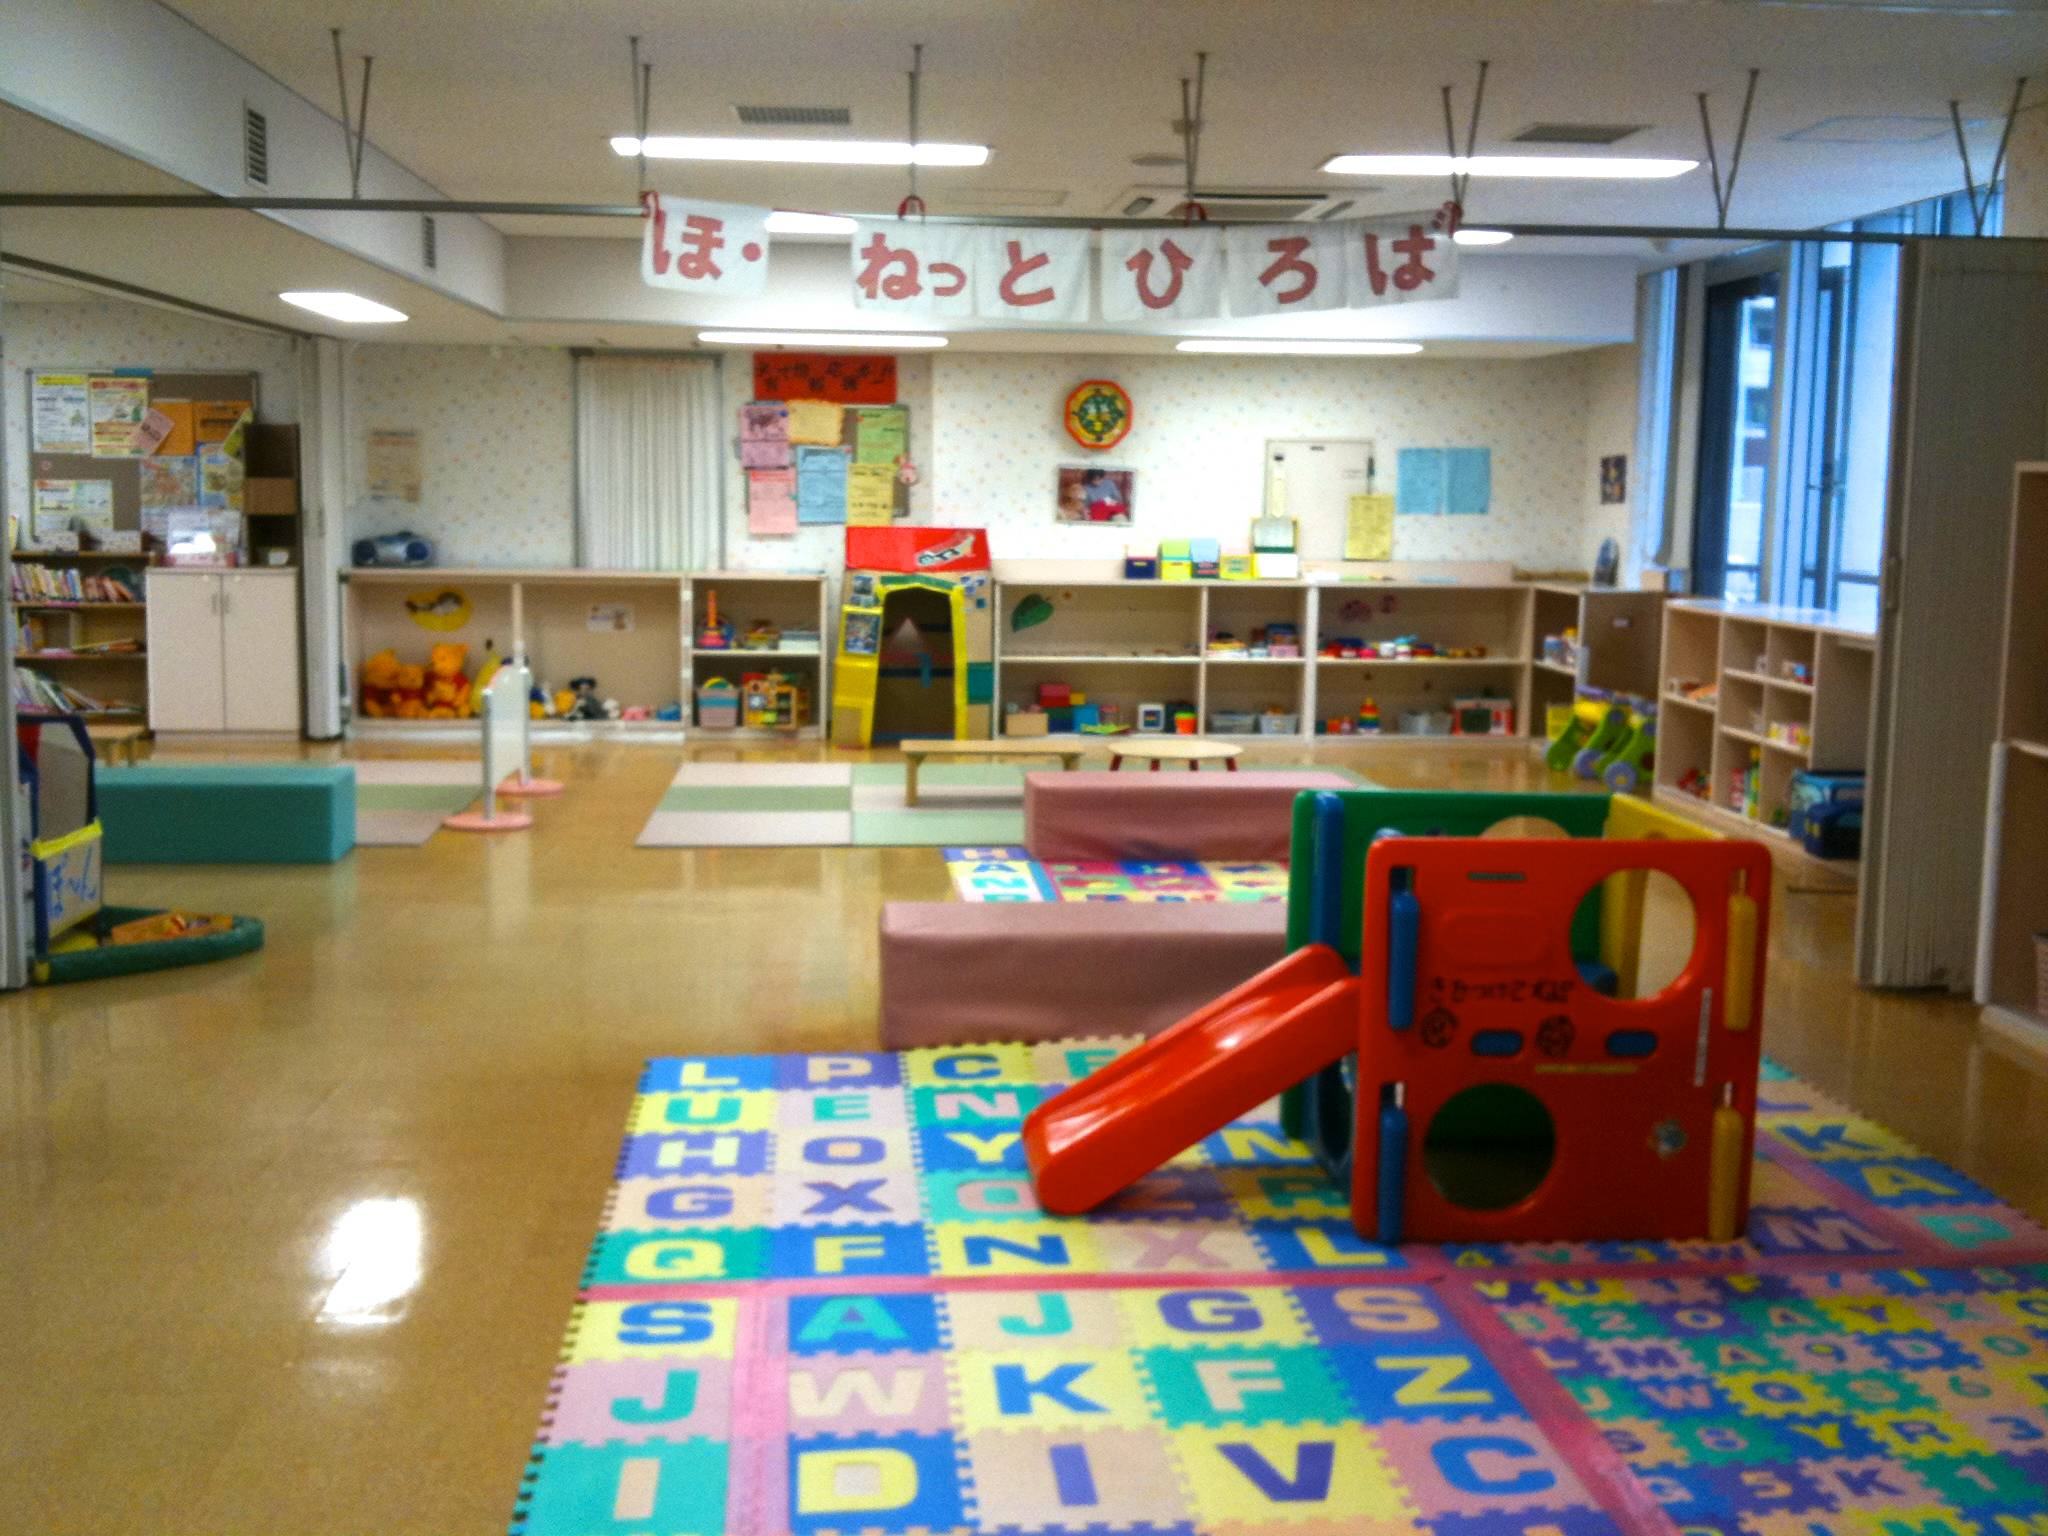 Japan Style Kids Playroom Designs (View 4 of 10)